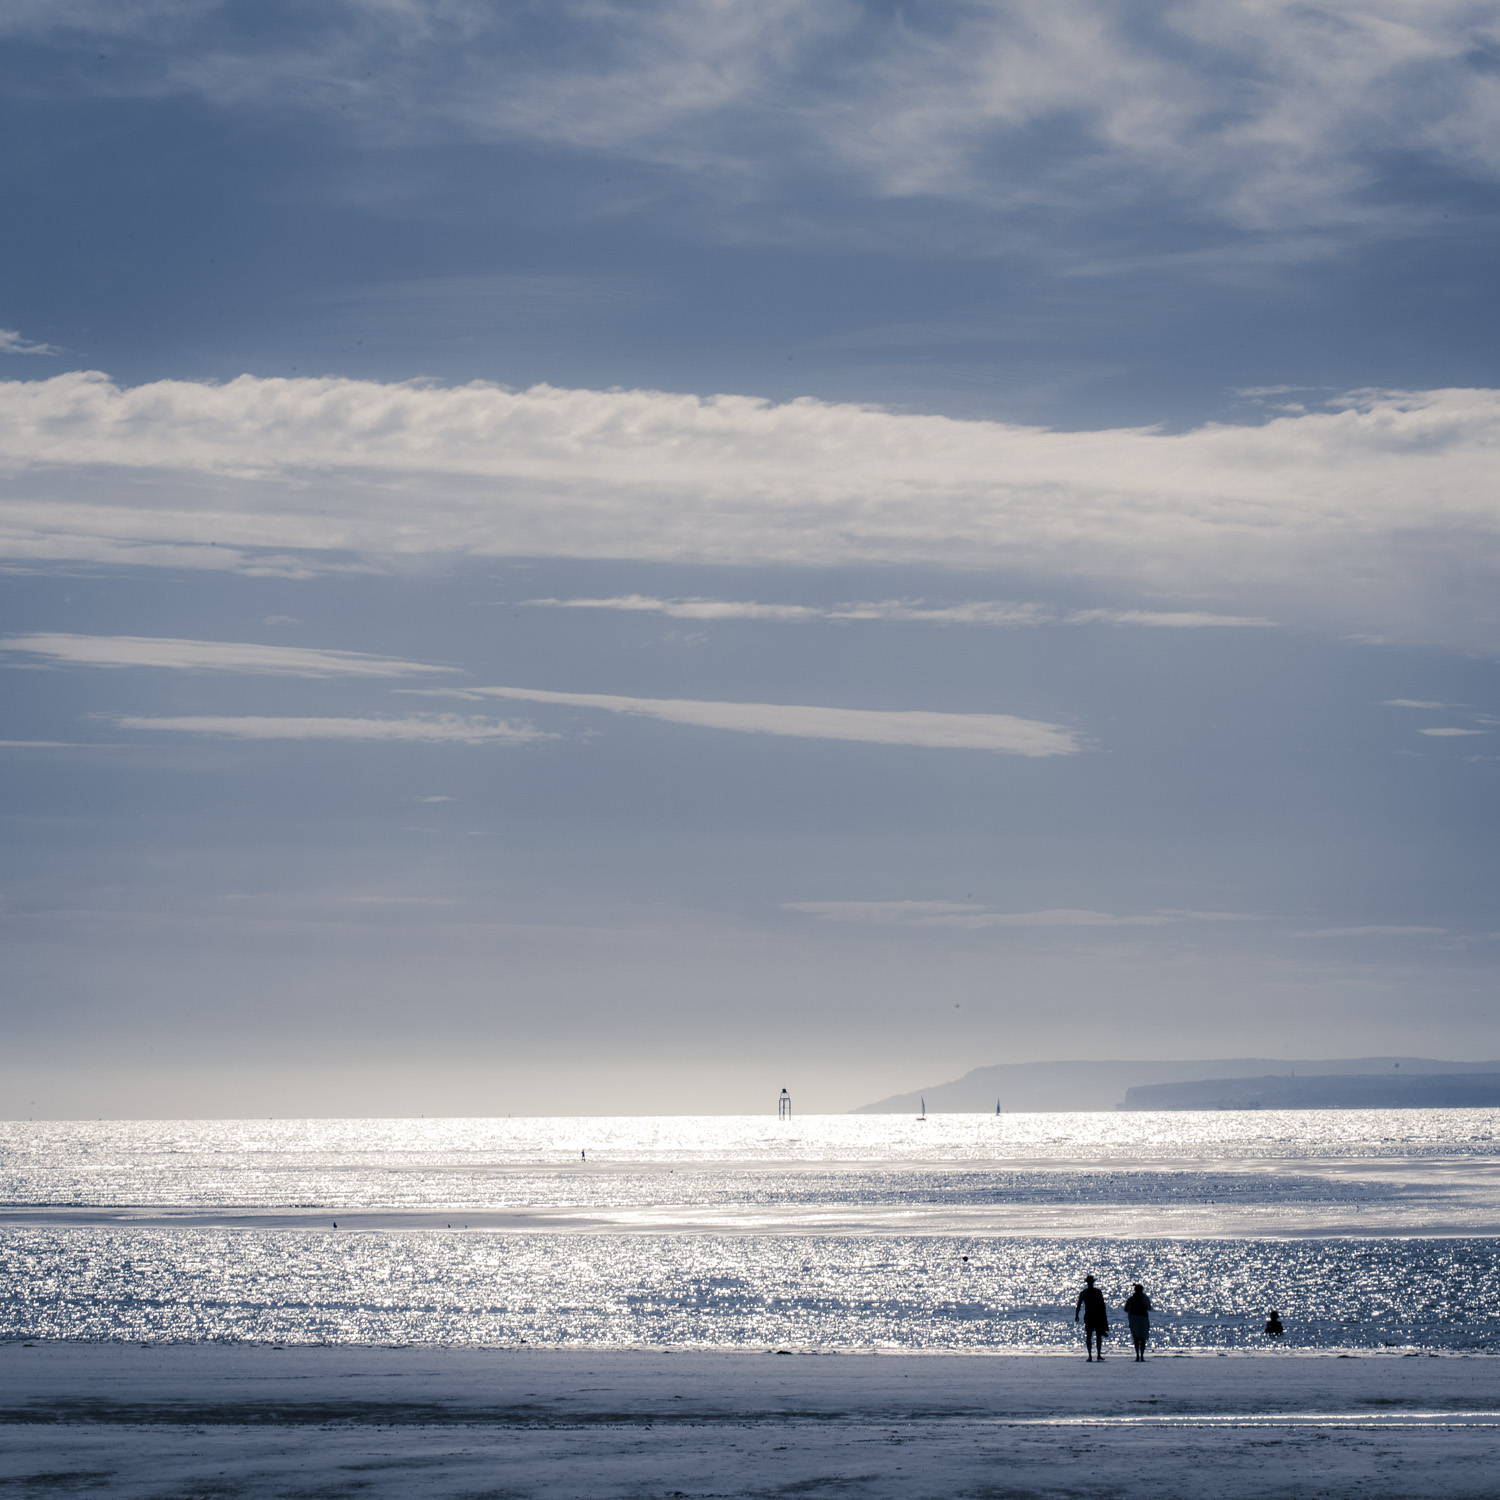 West wittering strollers